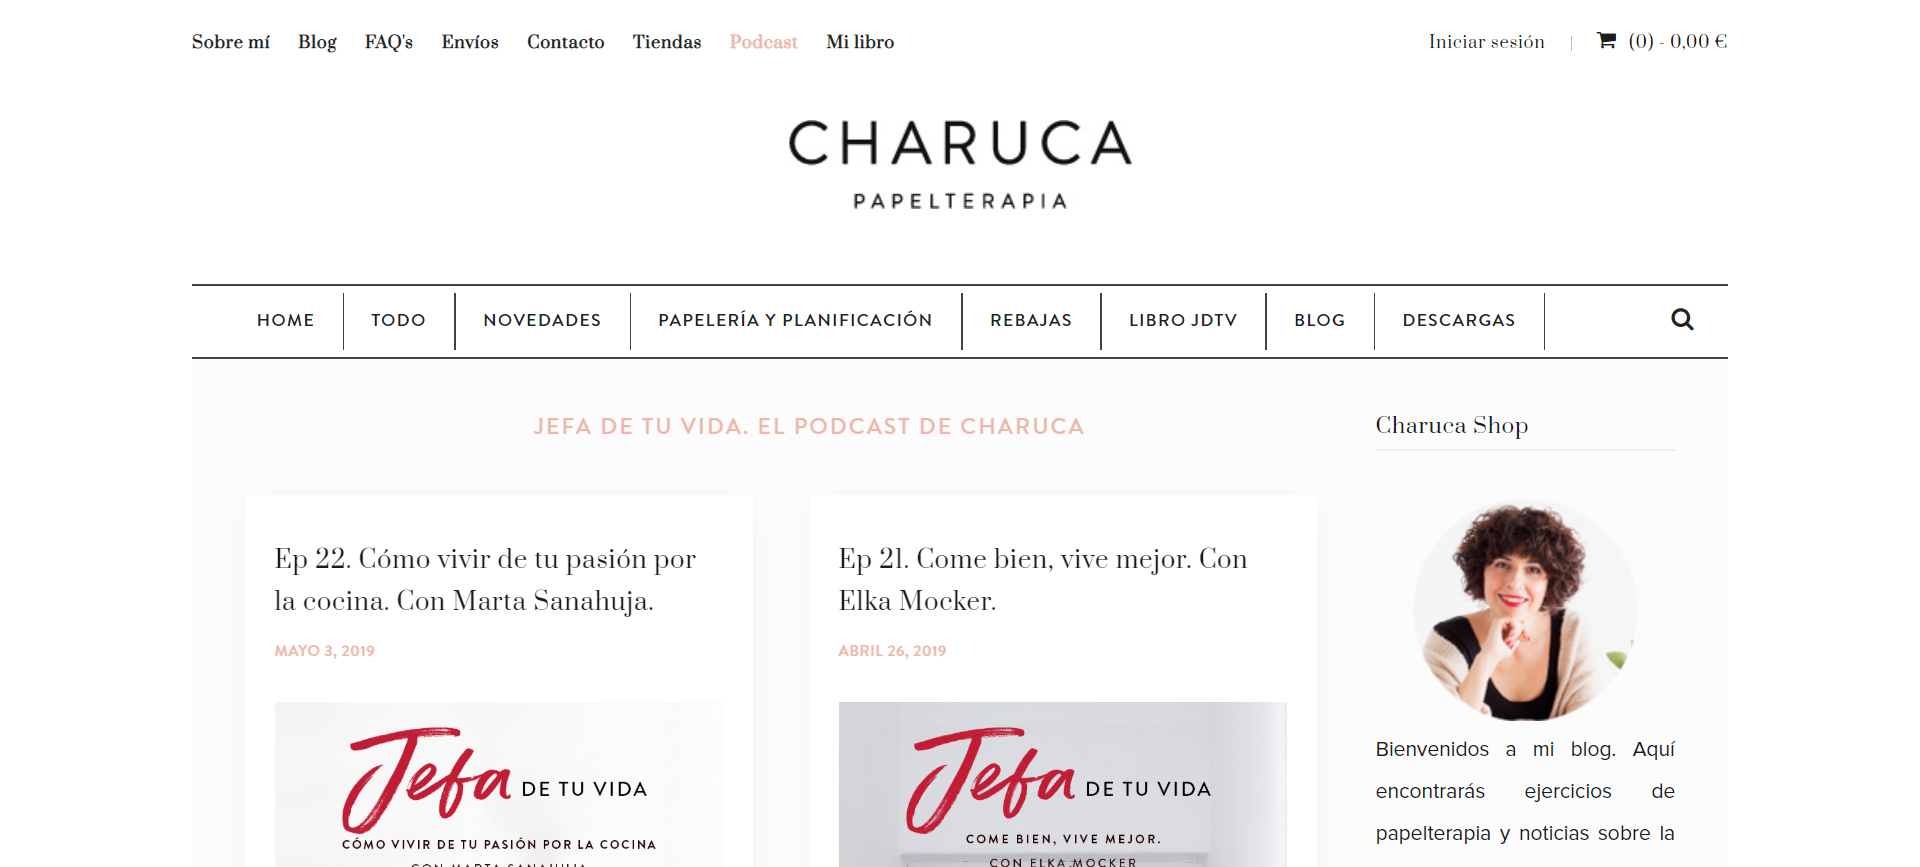 charuca-podcast